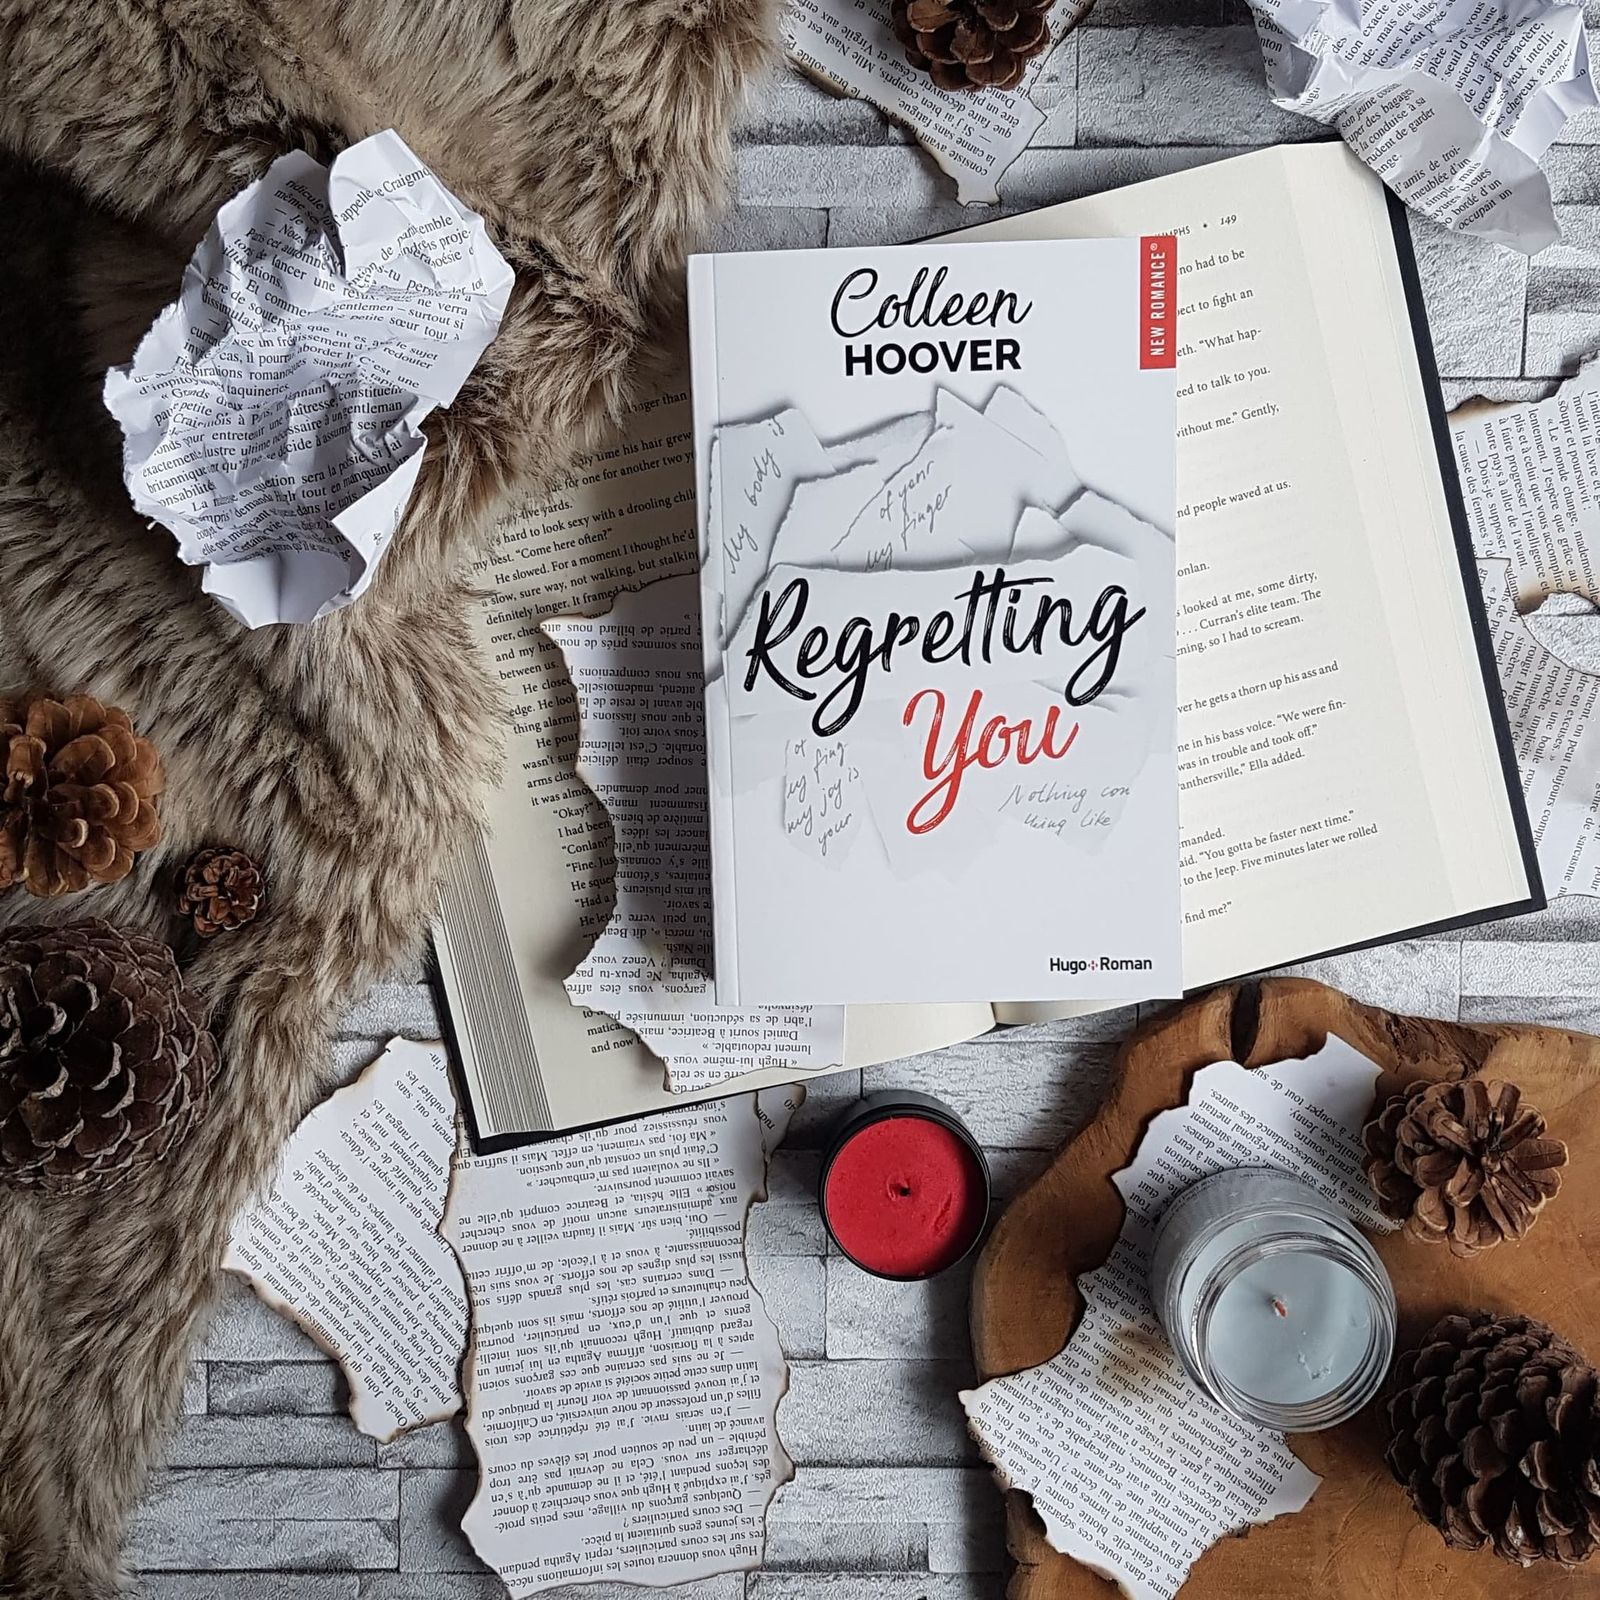 Regretting you - Colleen Hoover